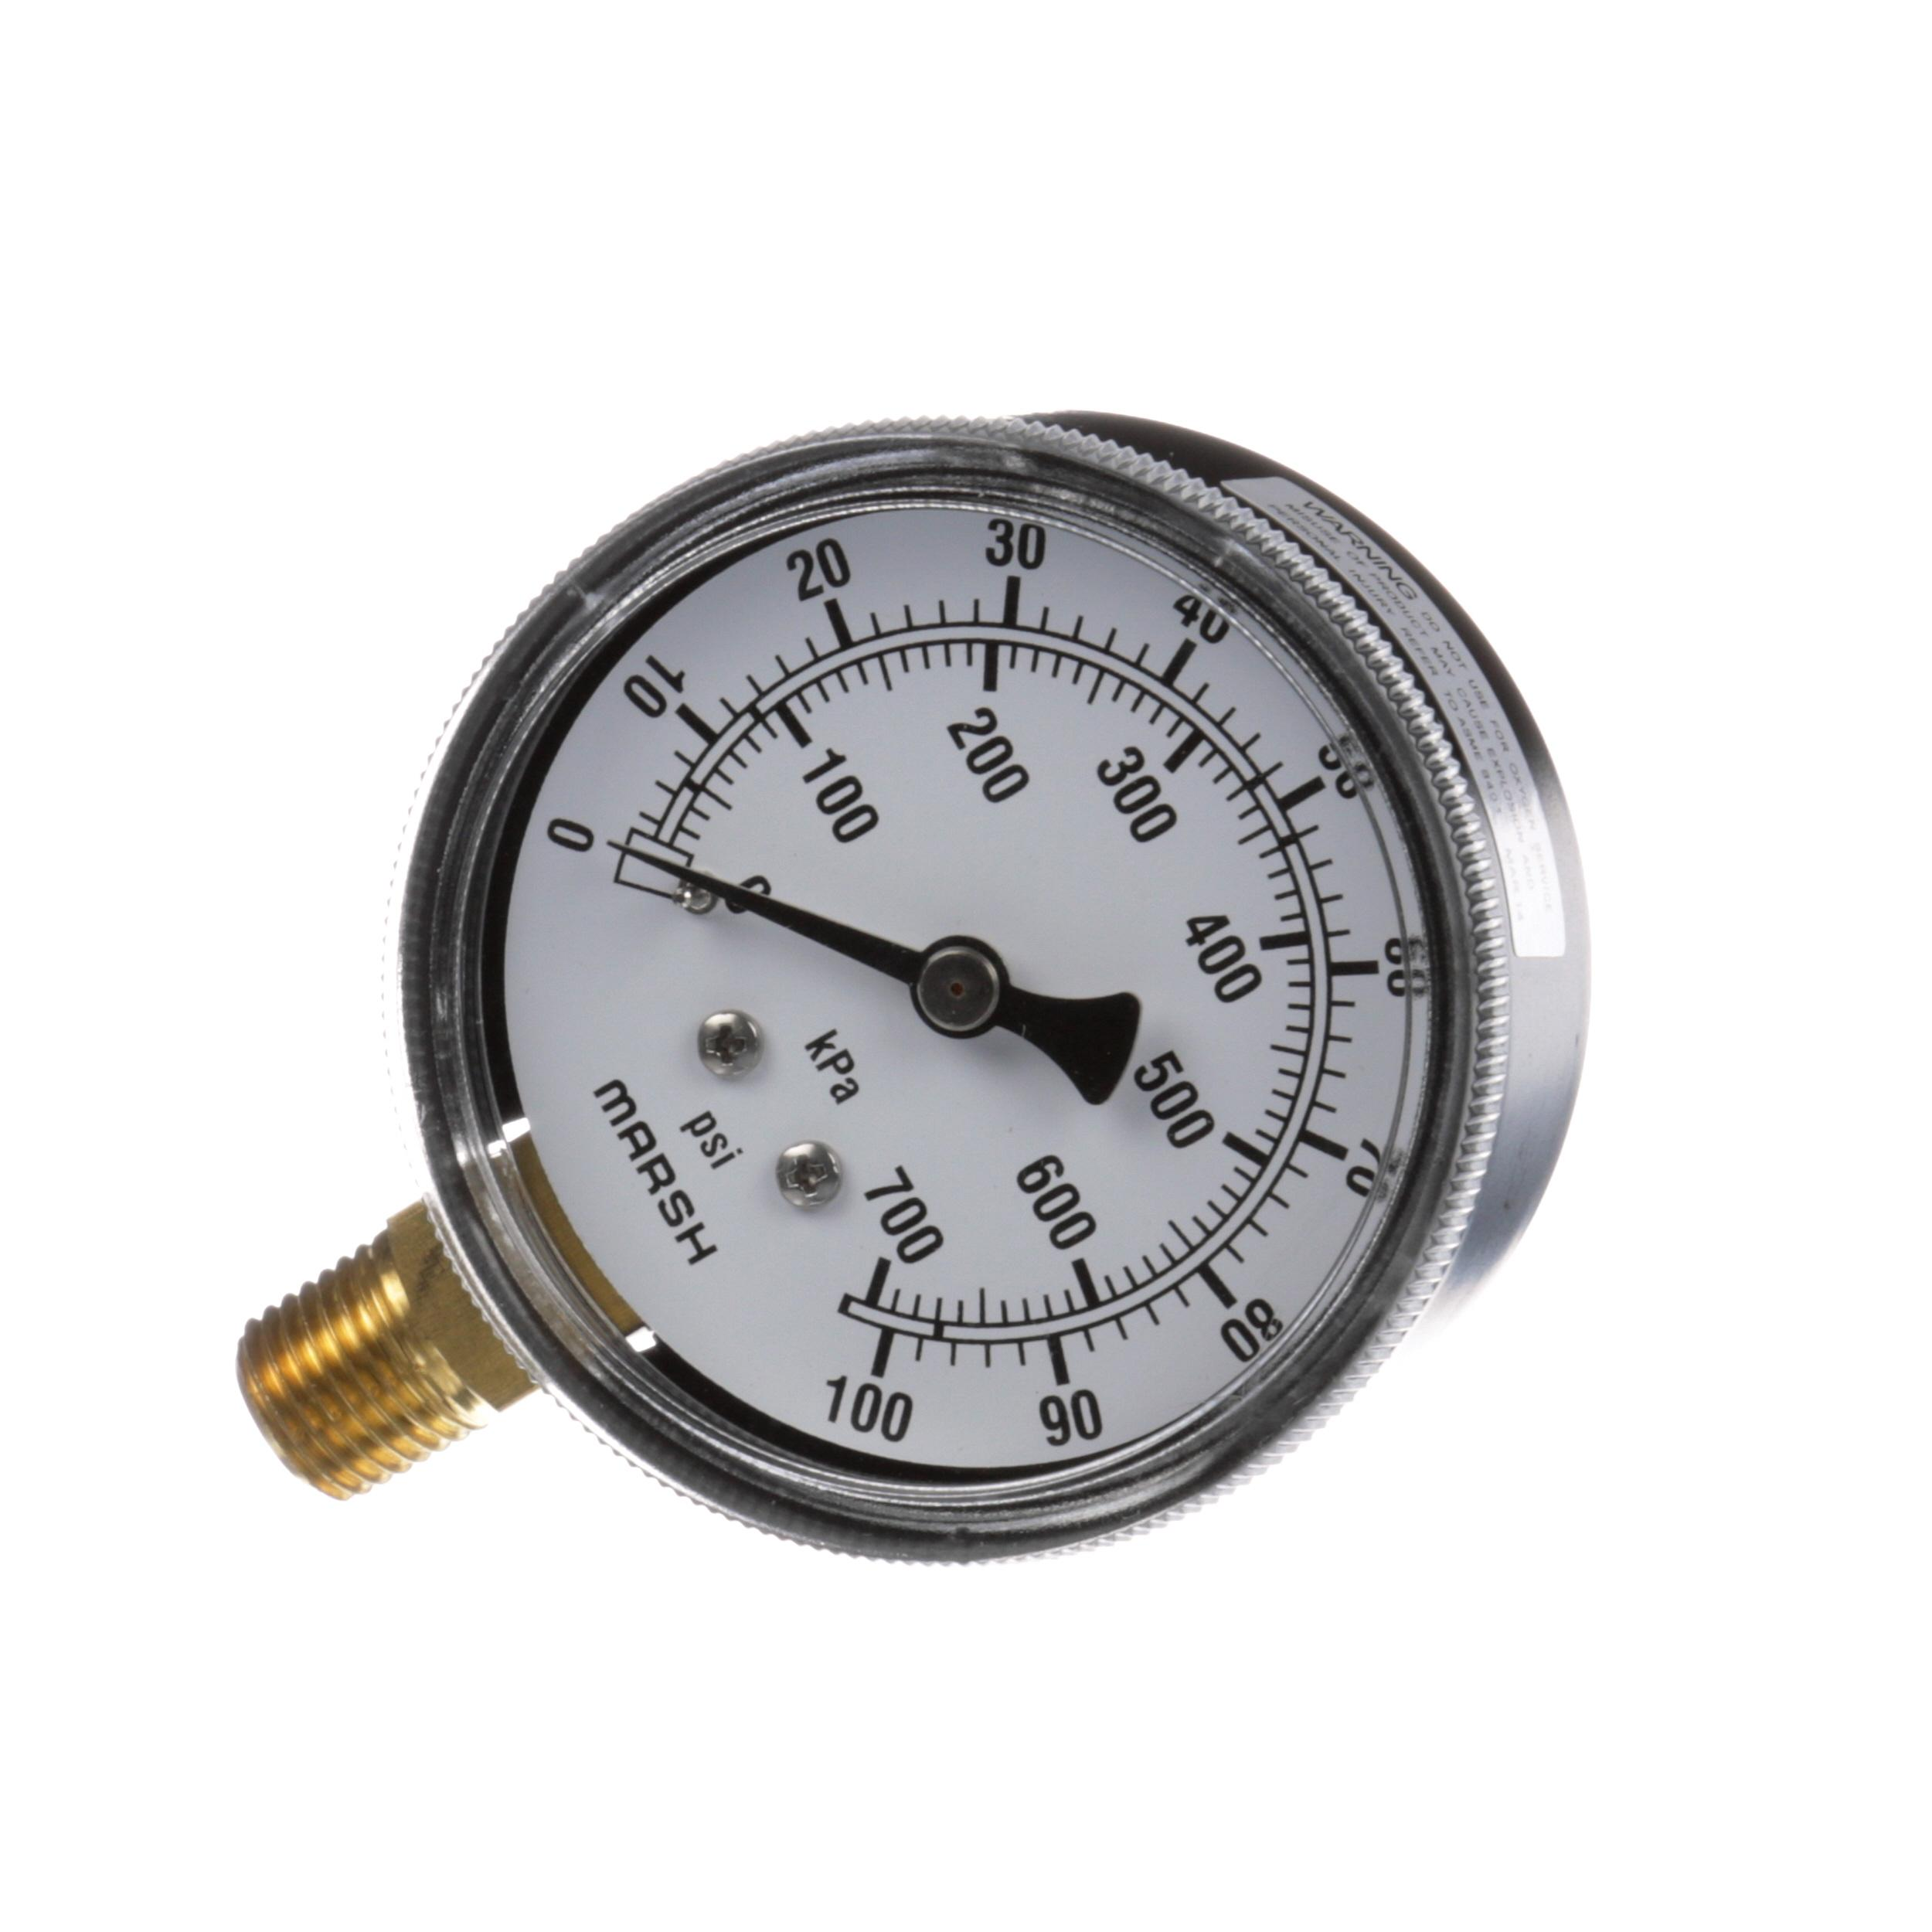 CLEVELAND GAUGE;BOT MOUNT;0-100PSI 2-1/2INX1/4IN;B